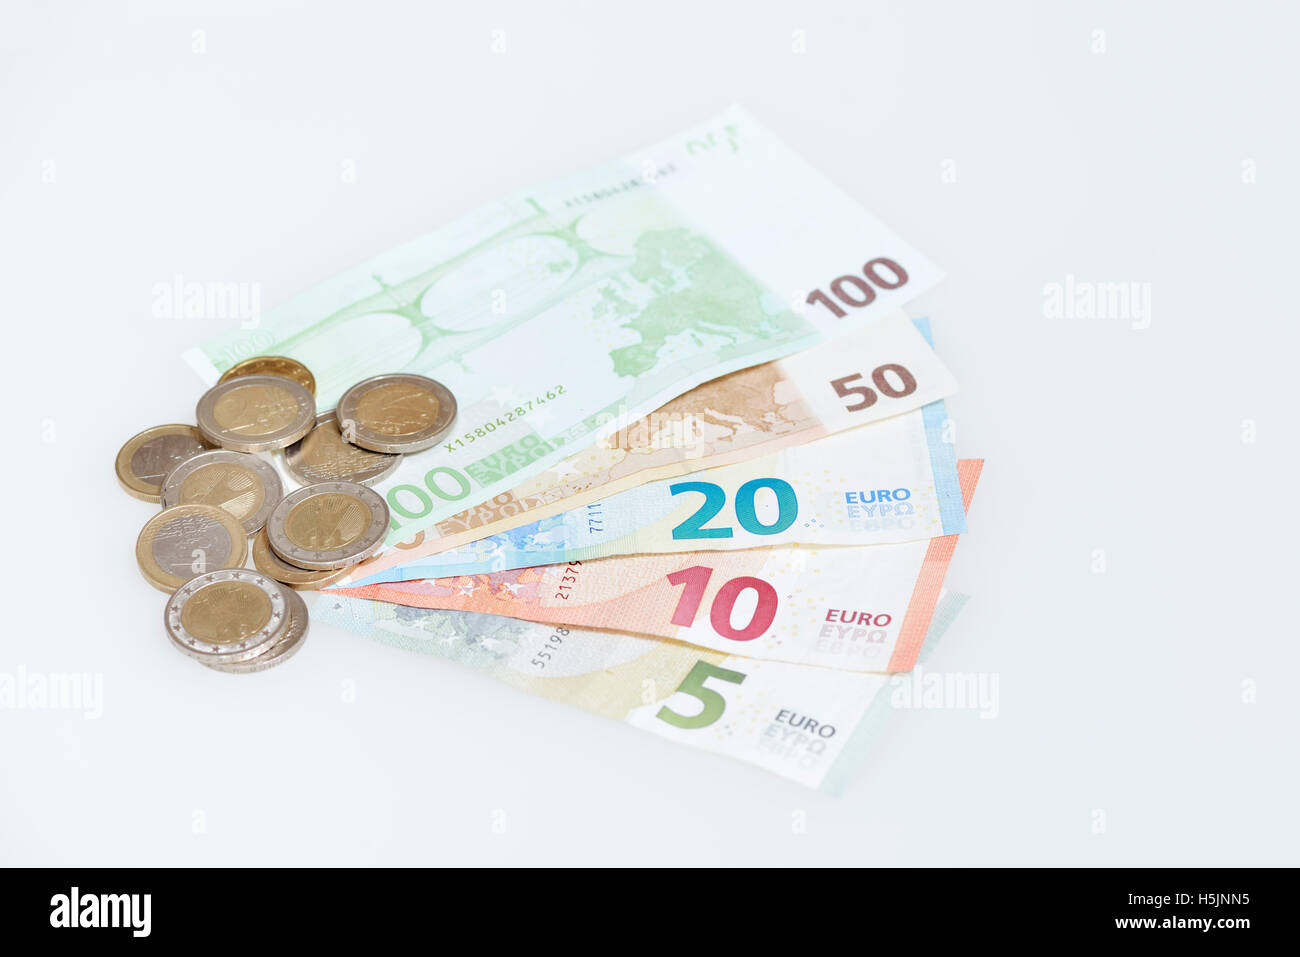 Different kind of Euro bills and coins - Stock Image